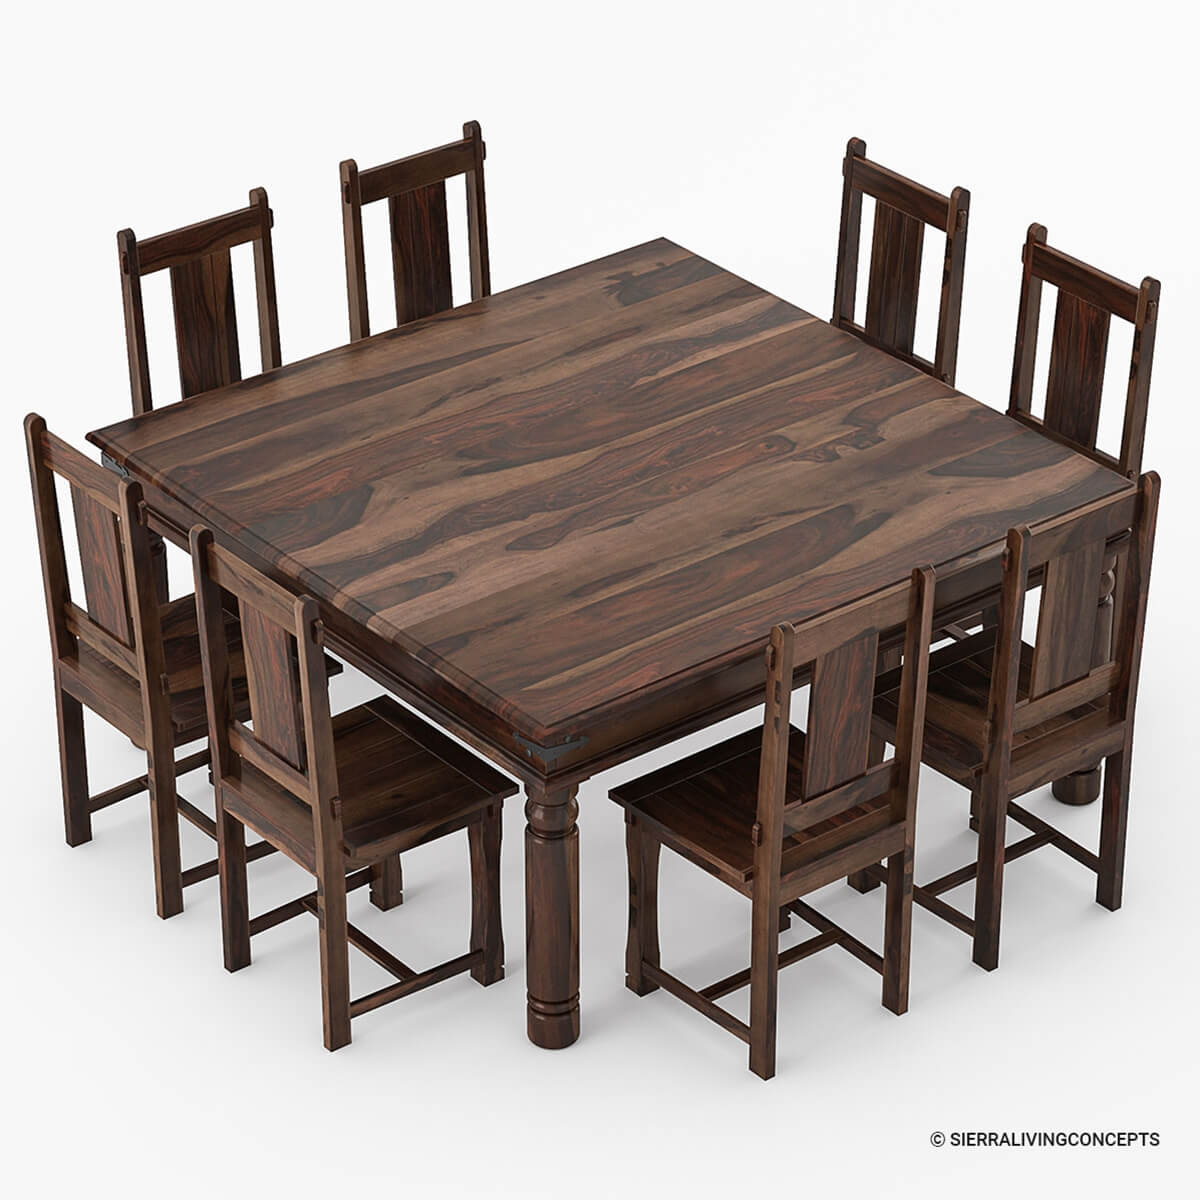 Rustic Solid Wood Farmhouse Dining Room Table Chair Set: Richmond Rustic Solid Wood Large Square Dining Room Table